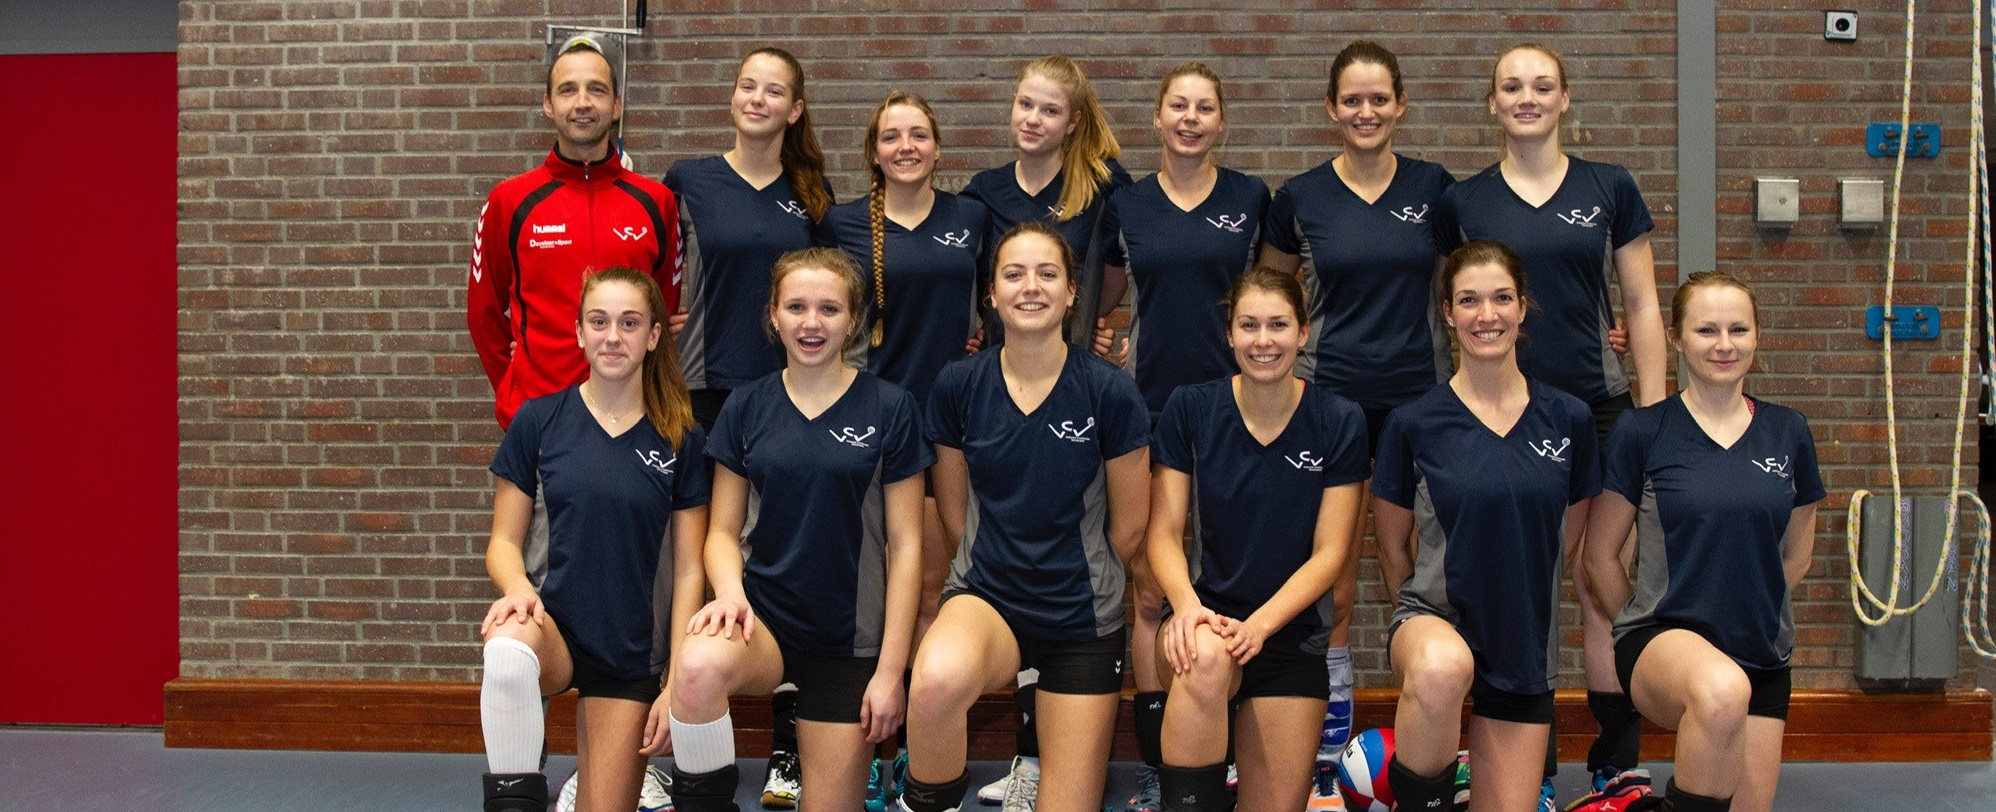 Teamfoto dames 1